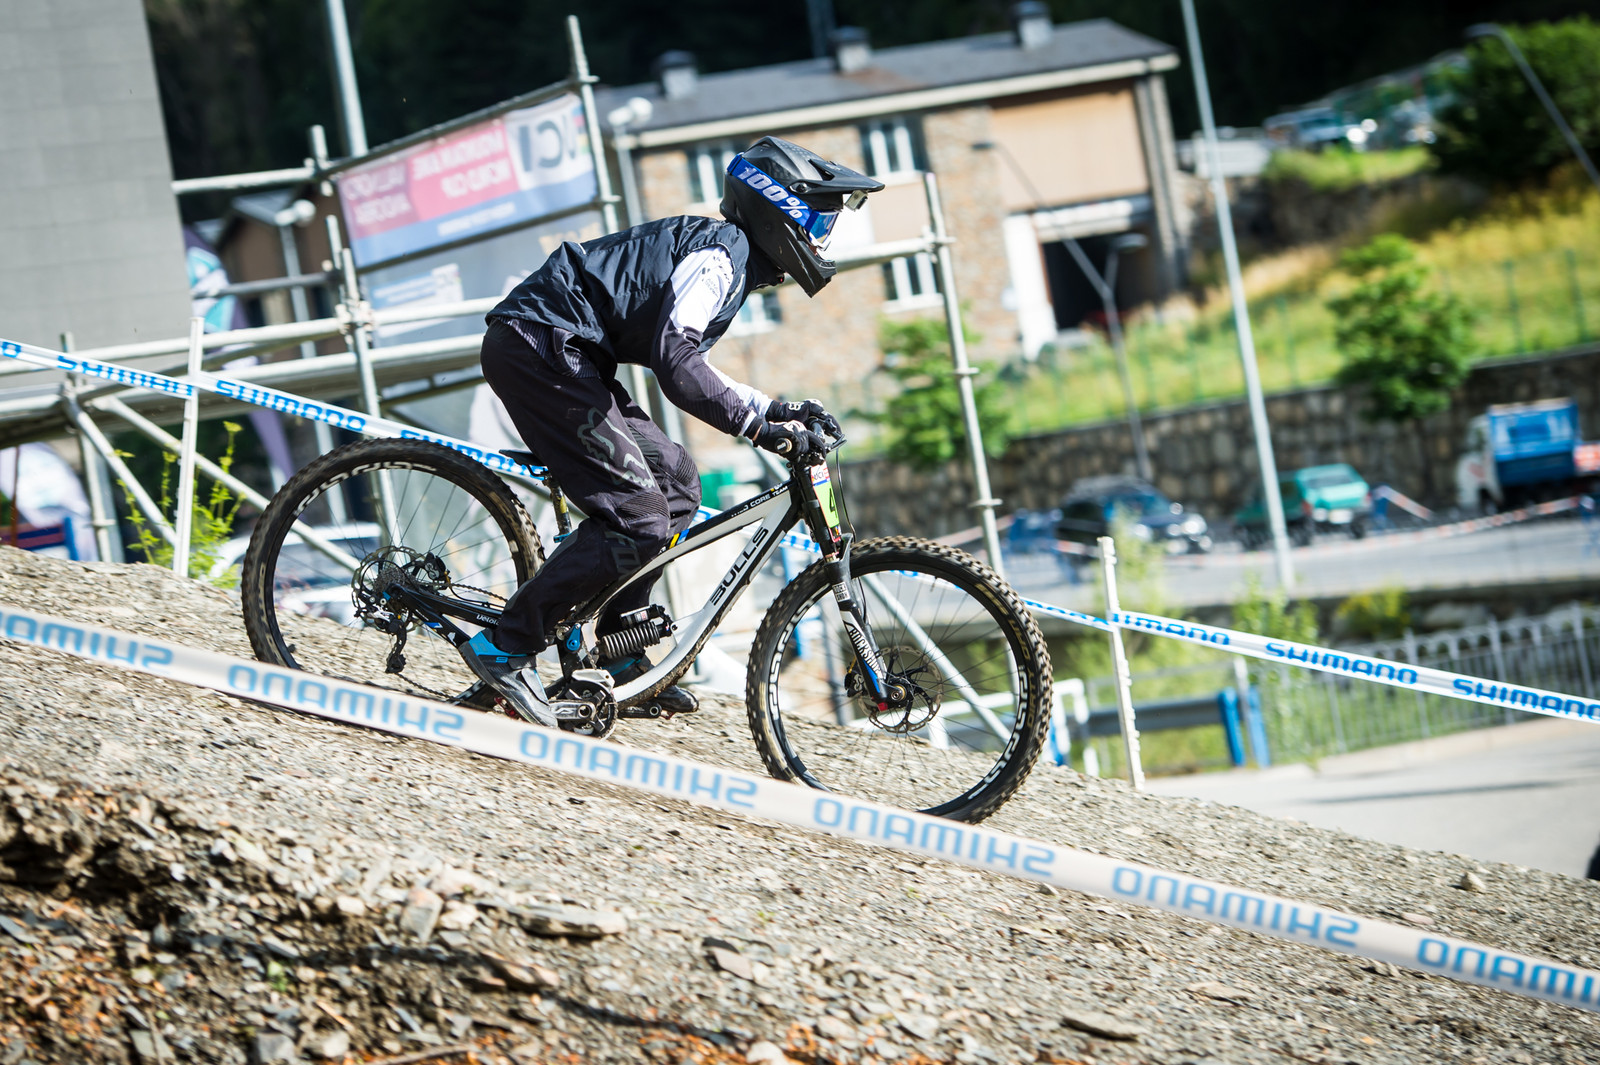 Bulls G-Out - G-Out Project: Andorra World Cup 2017 - Mountain Biking Pictures - Vital MTB